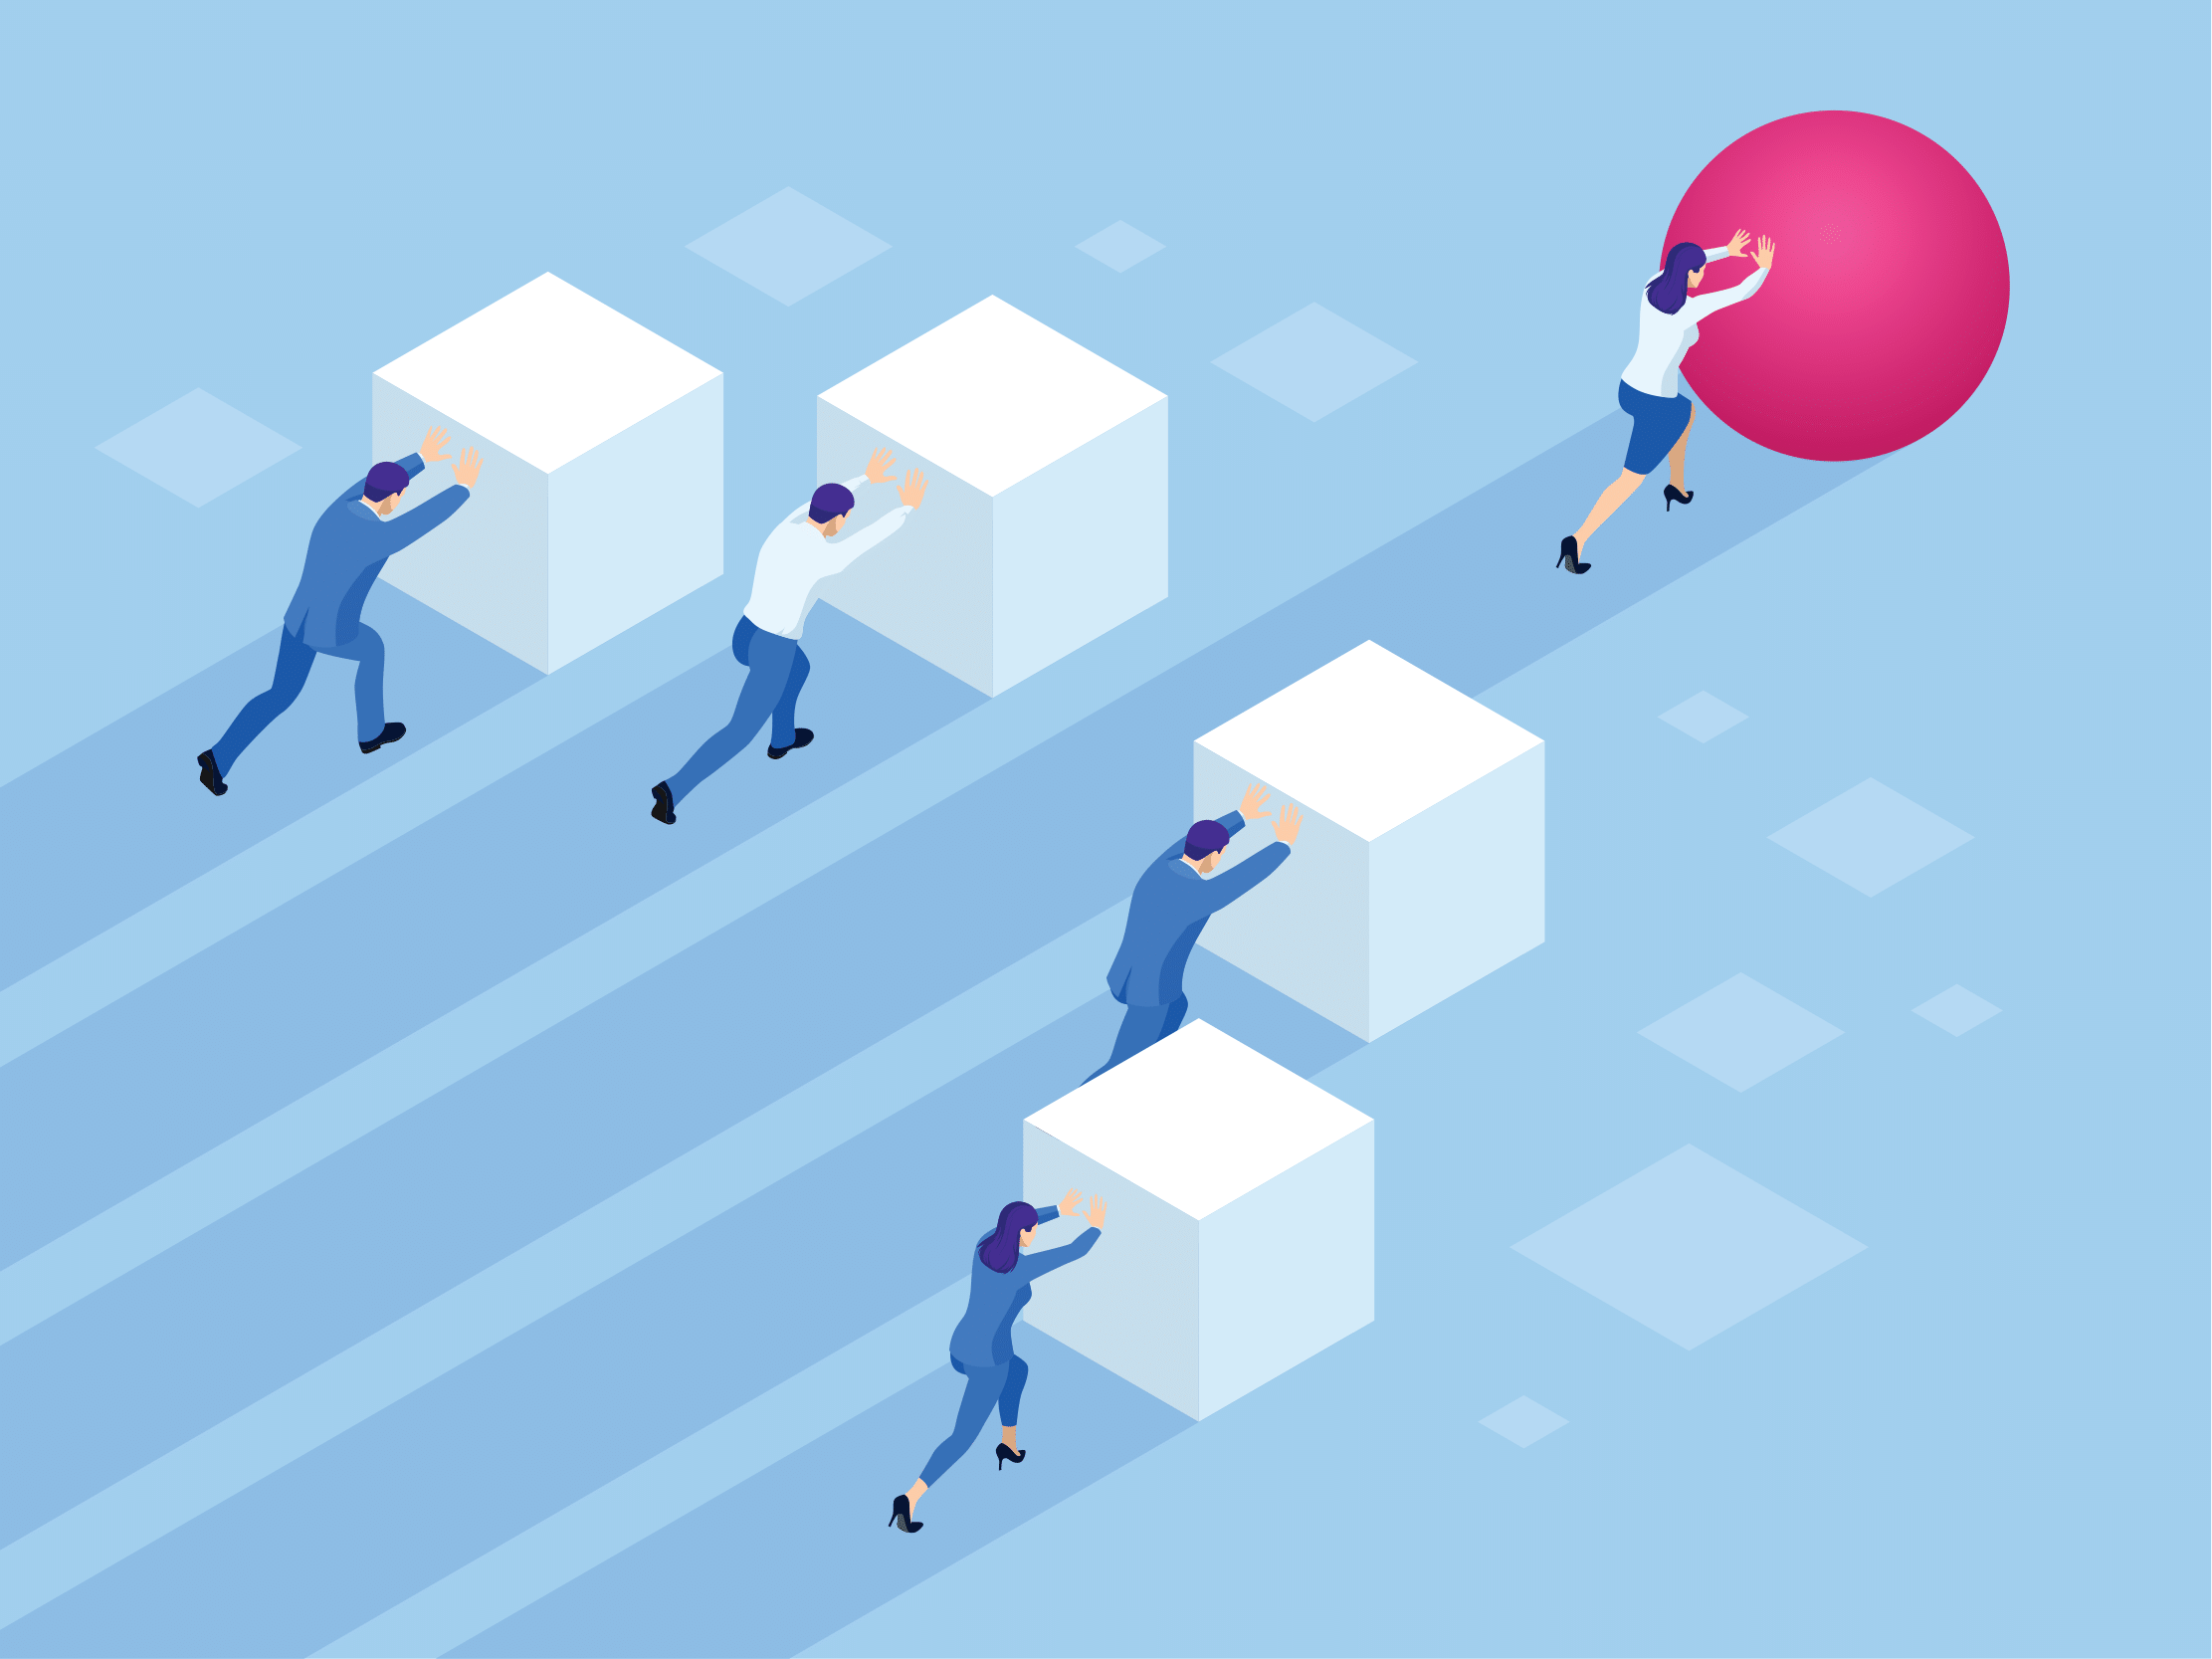 The strategic tasks you should be introducing in 2021